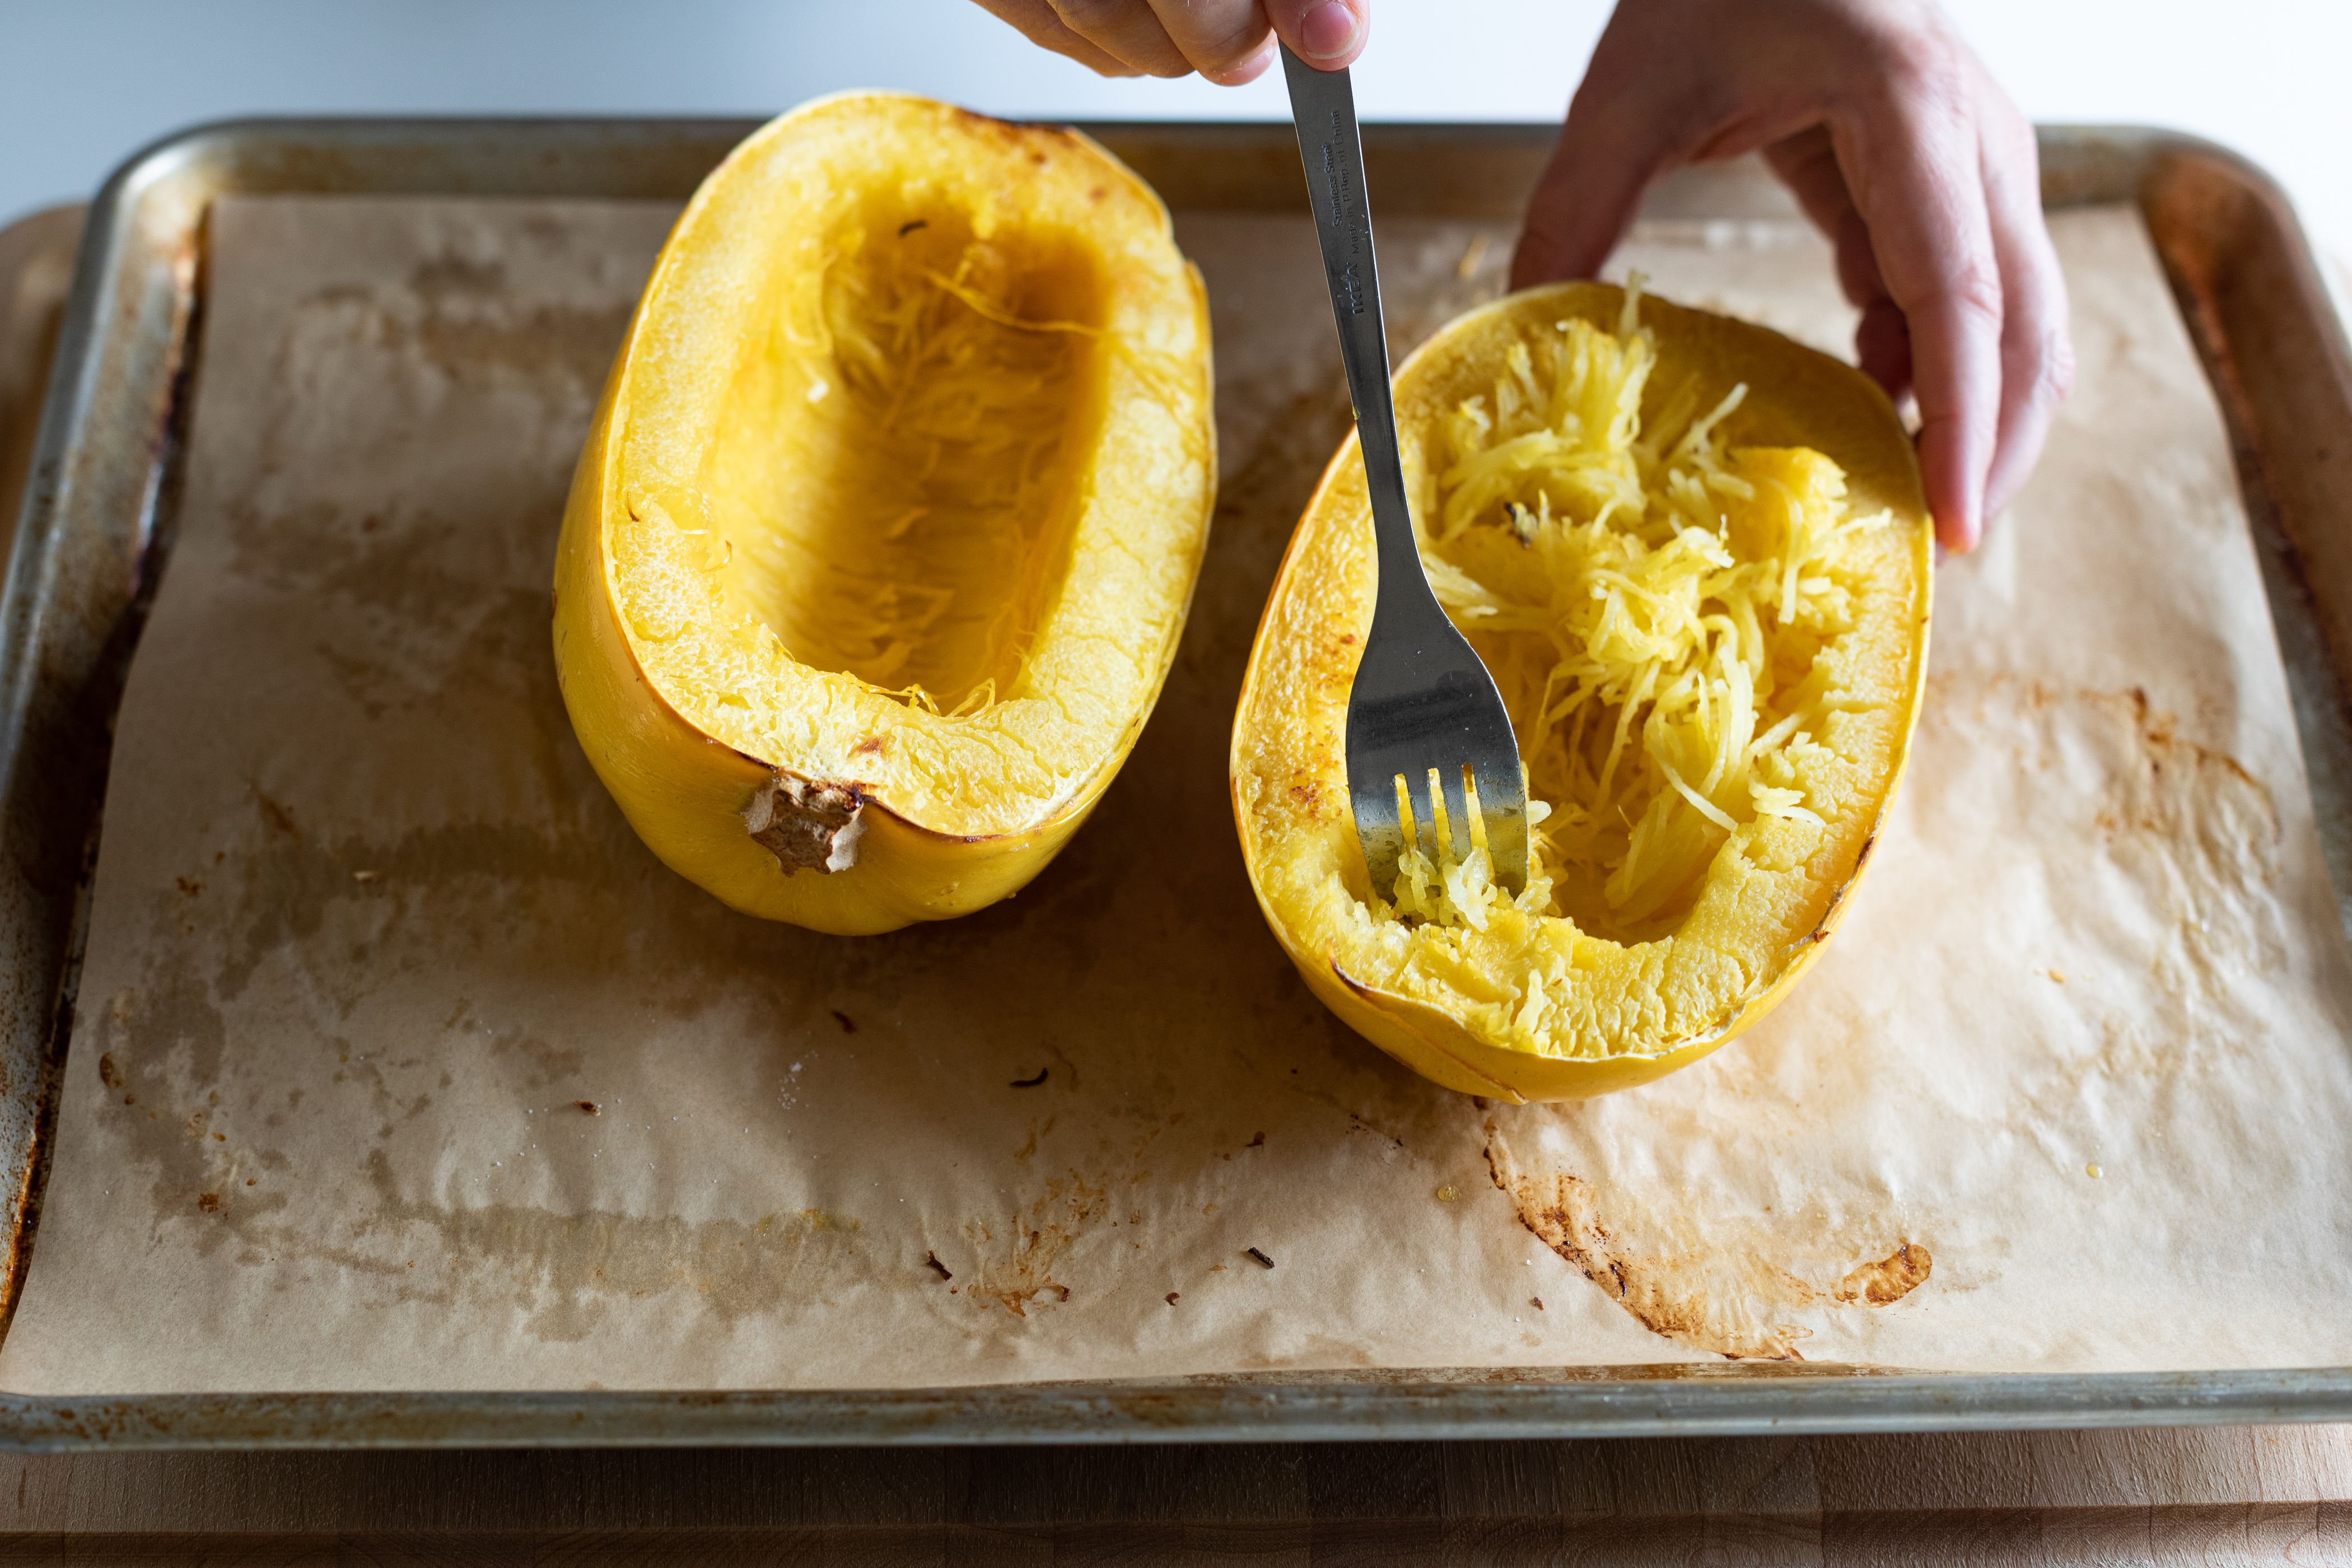 Scoop out the spaghetti squash flesh away from the skin